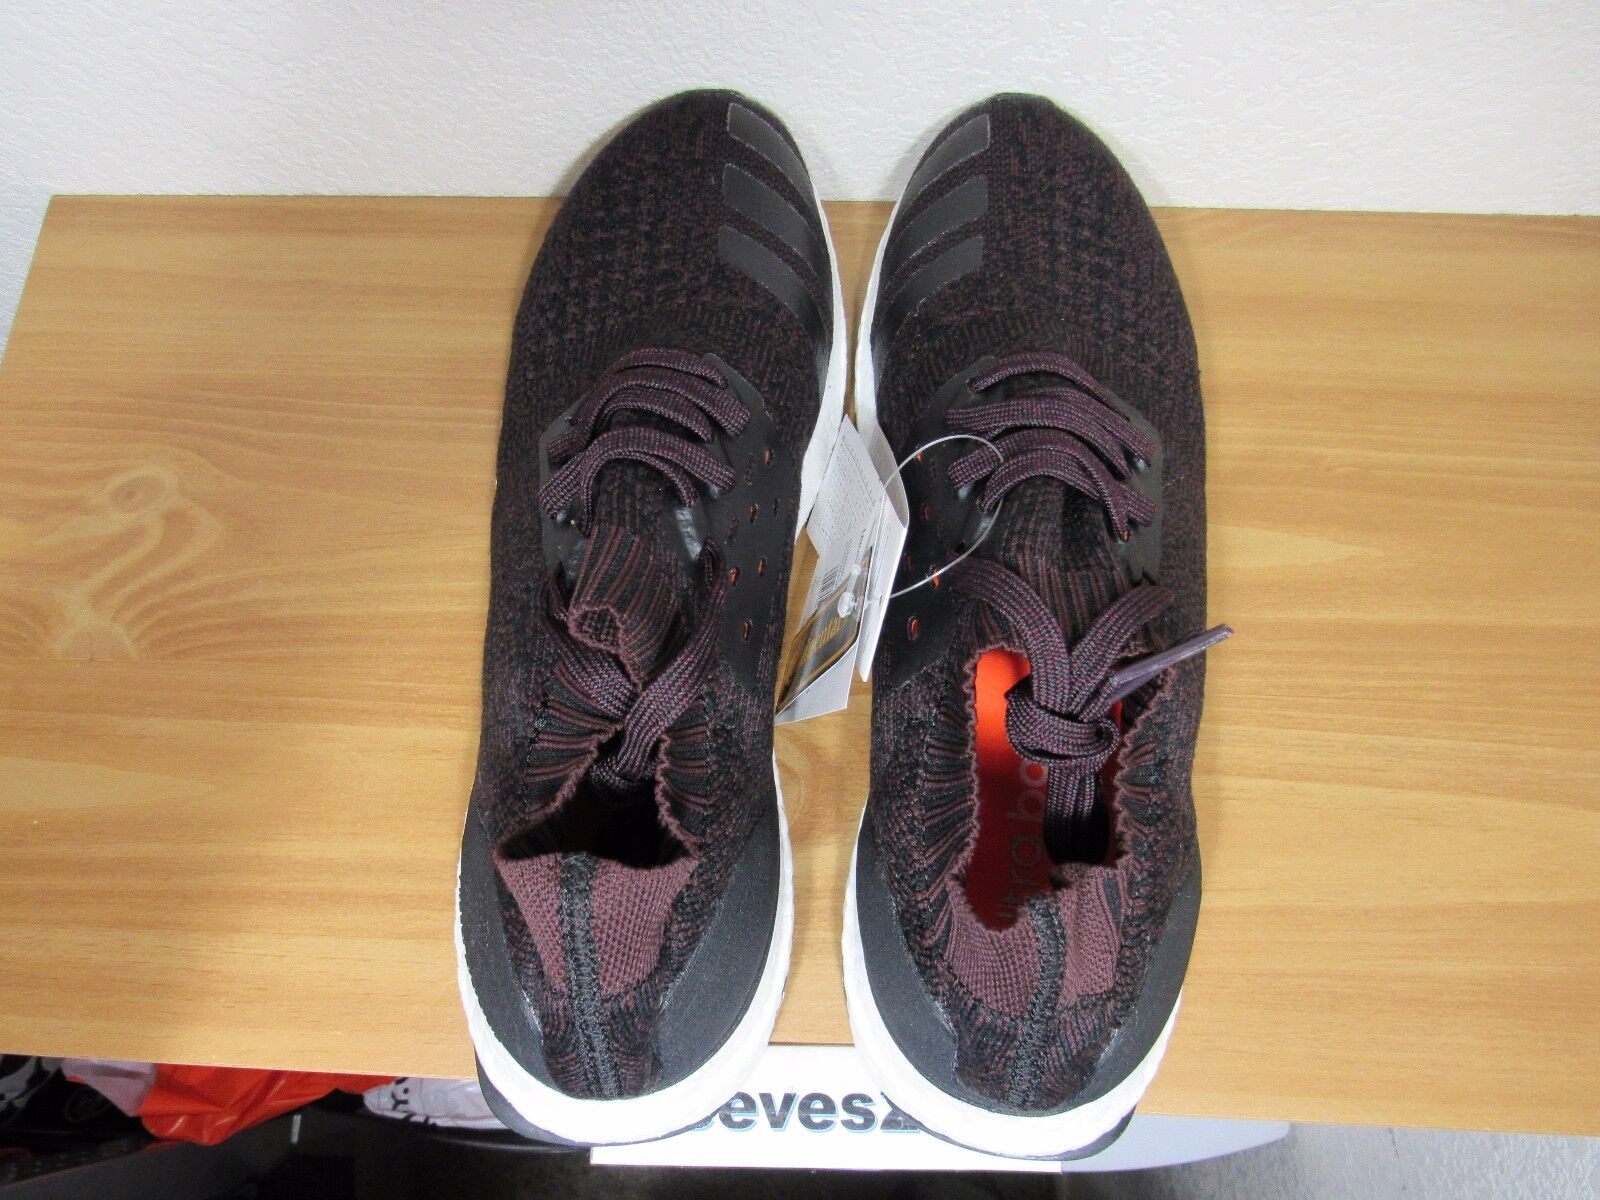 099608e1c adidas Wool Ultra Boost Uncaged Dark Burgundy Red Sz 9 Ultraboost By2552  for sale online